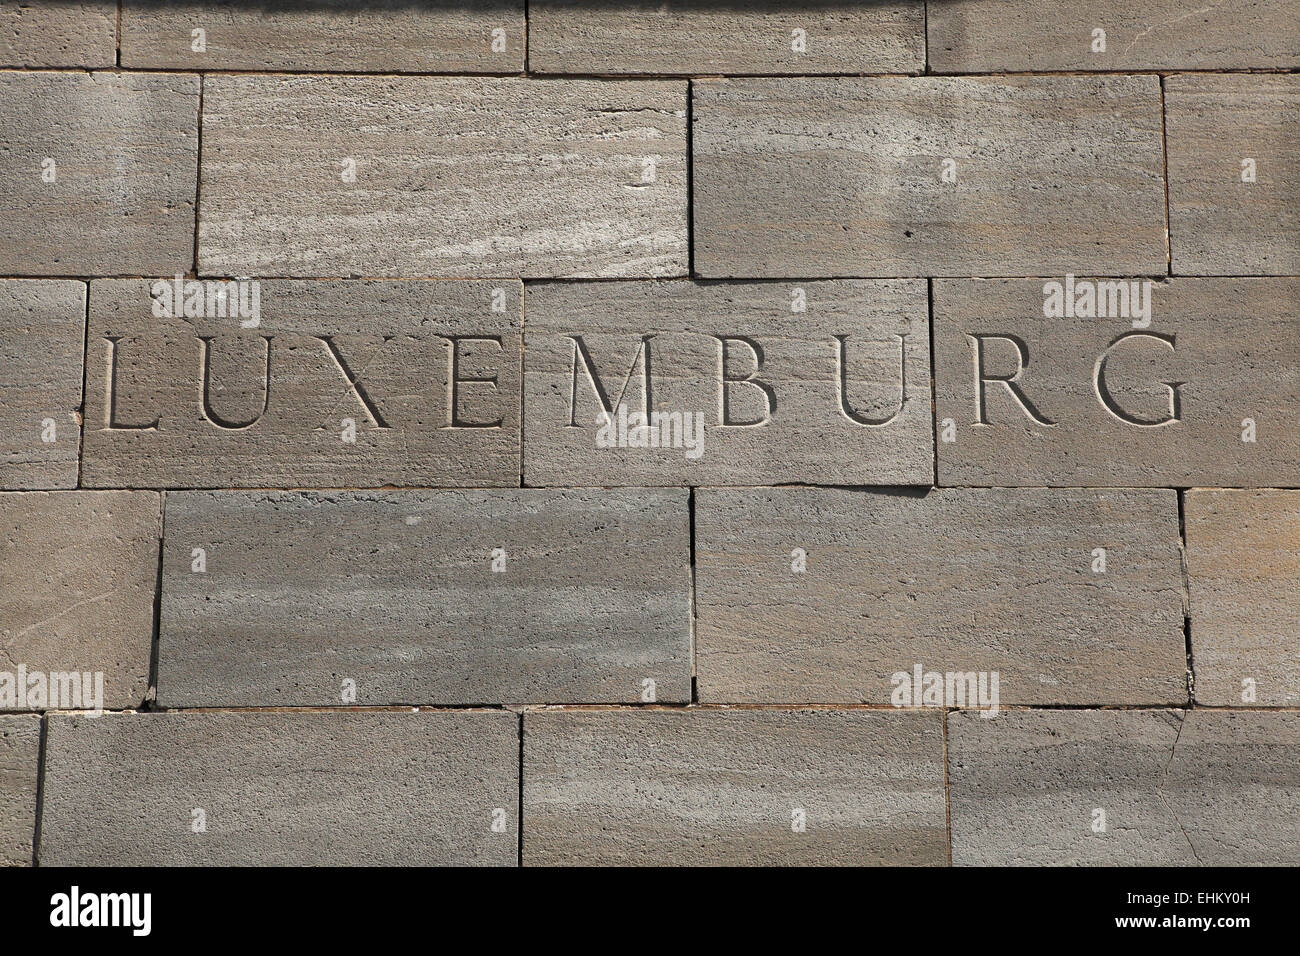 Luxemburg. Word carved into the stone blocks. - Stock Image